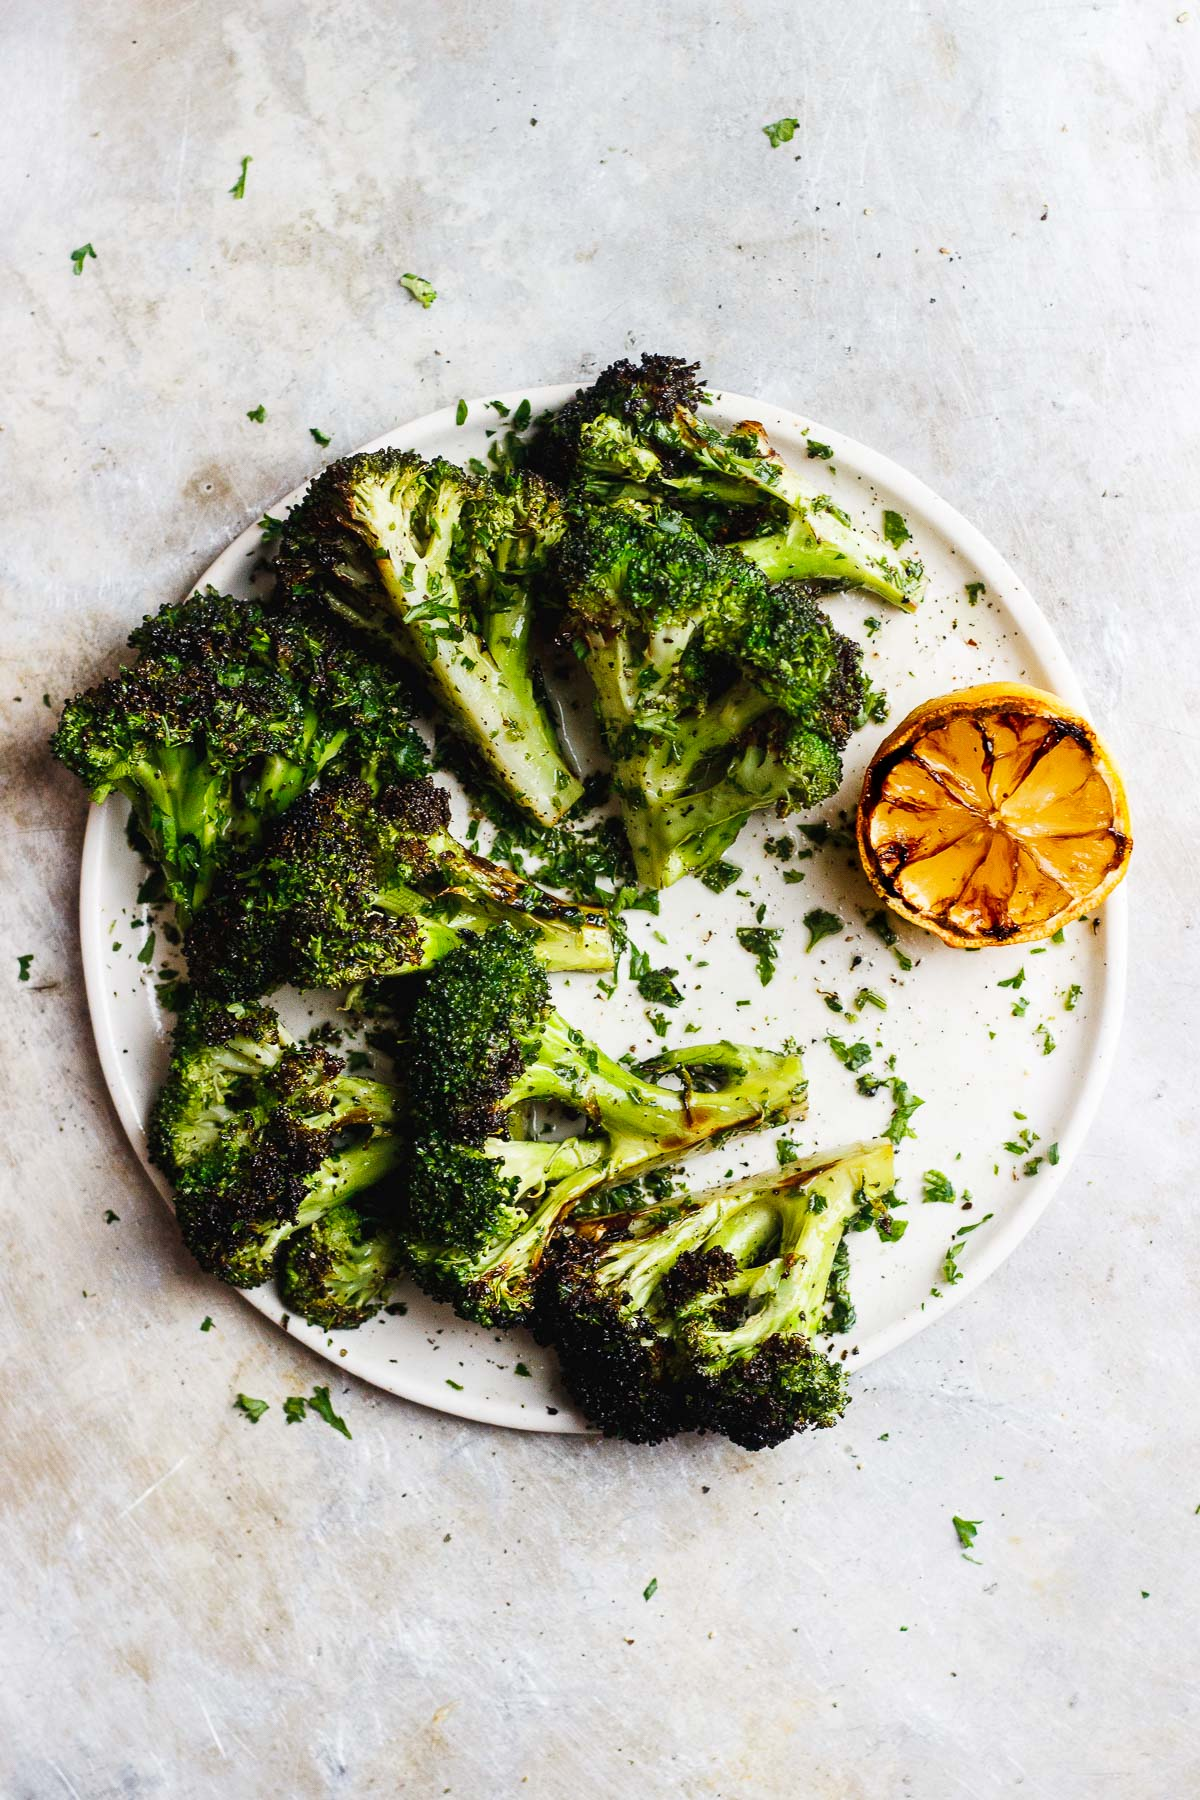 GRILLED BROCCOLI WITH CHARRED LEMON PARSLEY SAUCE